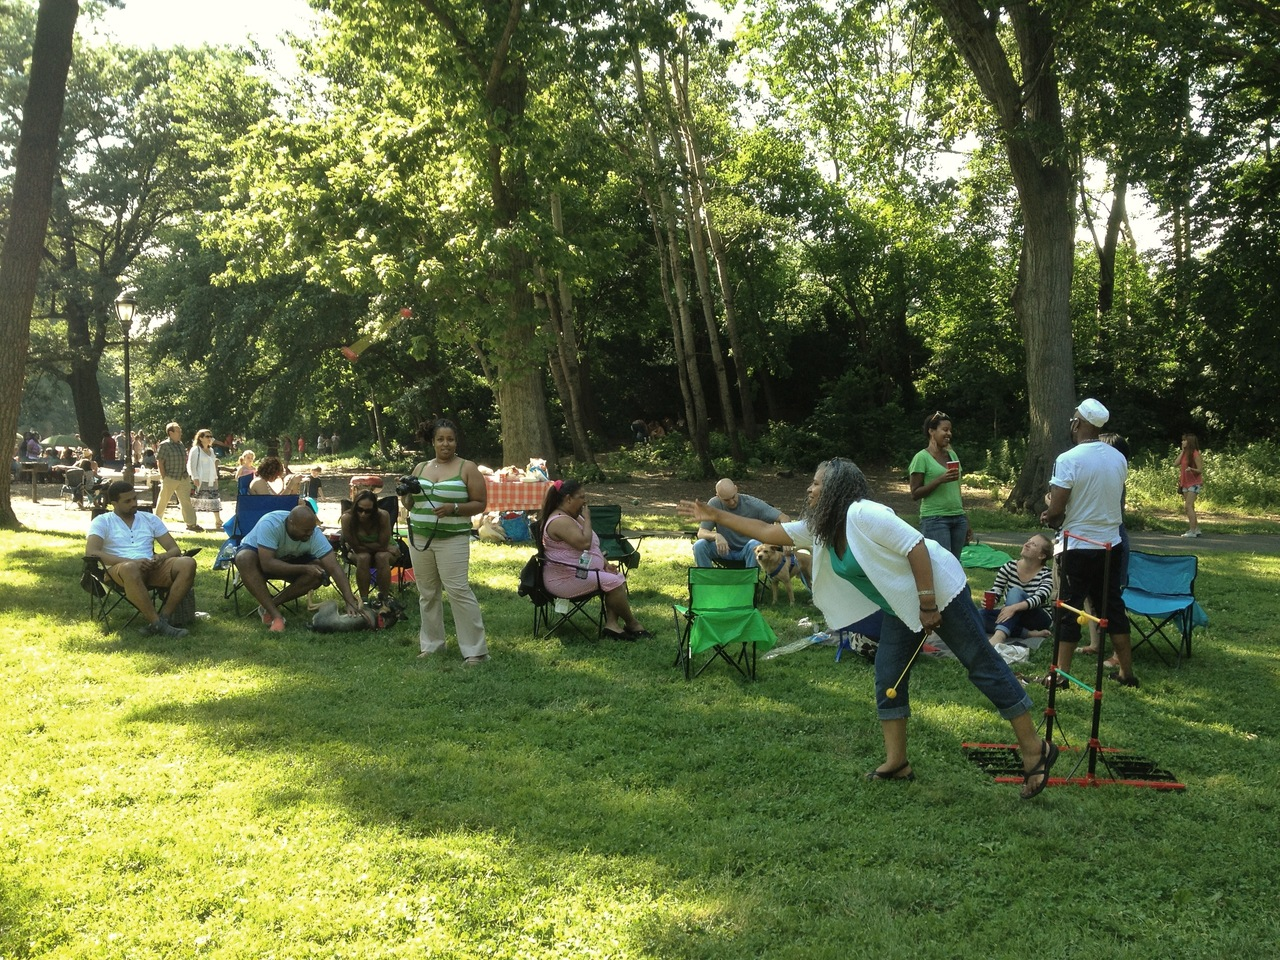 prospect park for a fathers day picnic